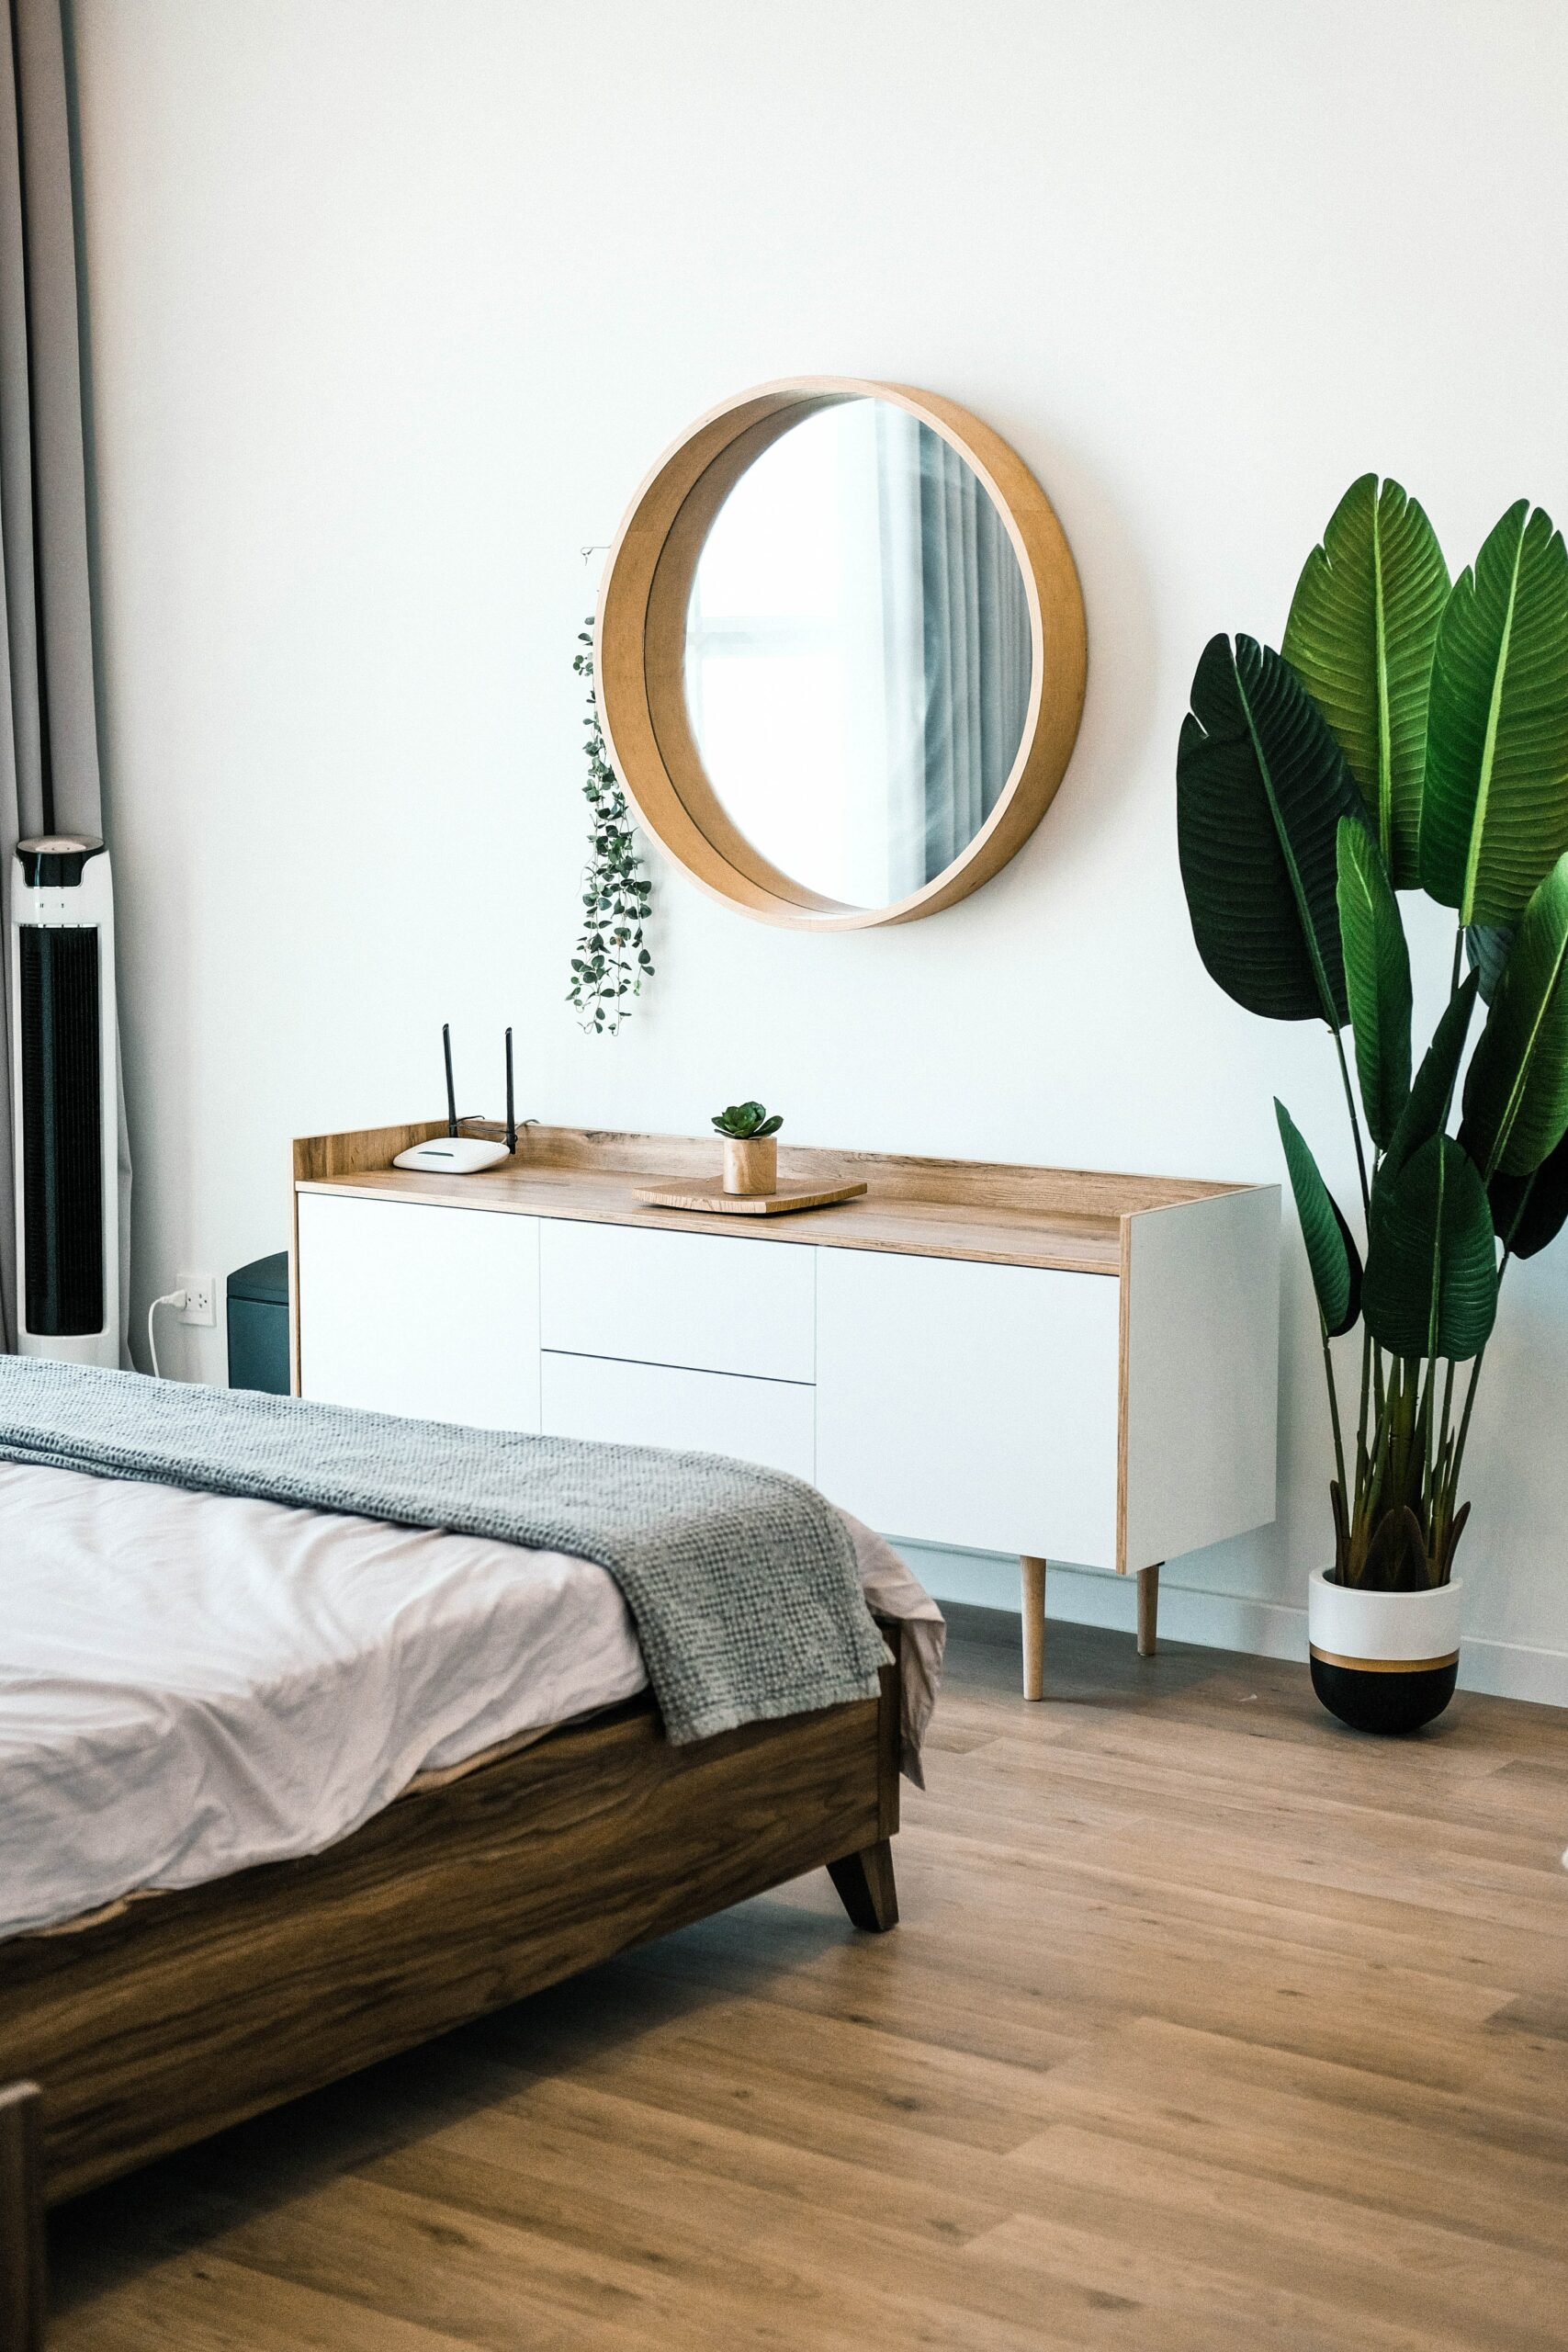 A room was sparse decor - one of the 10 home staging tips